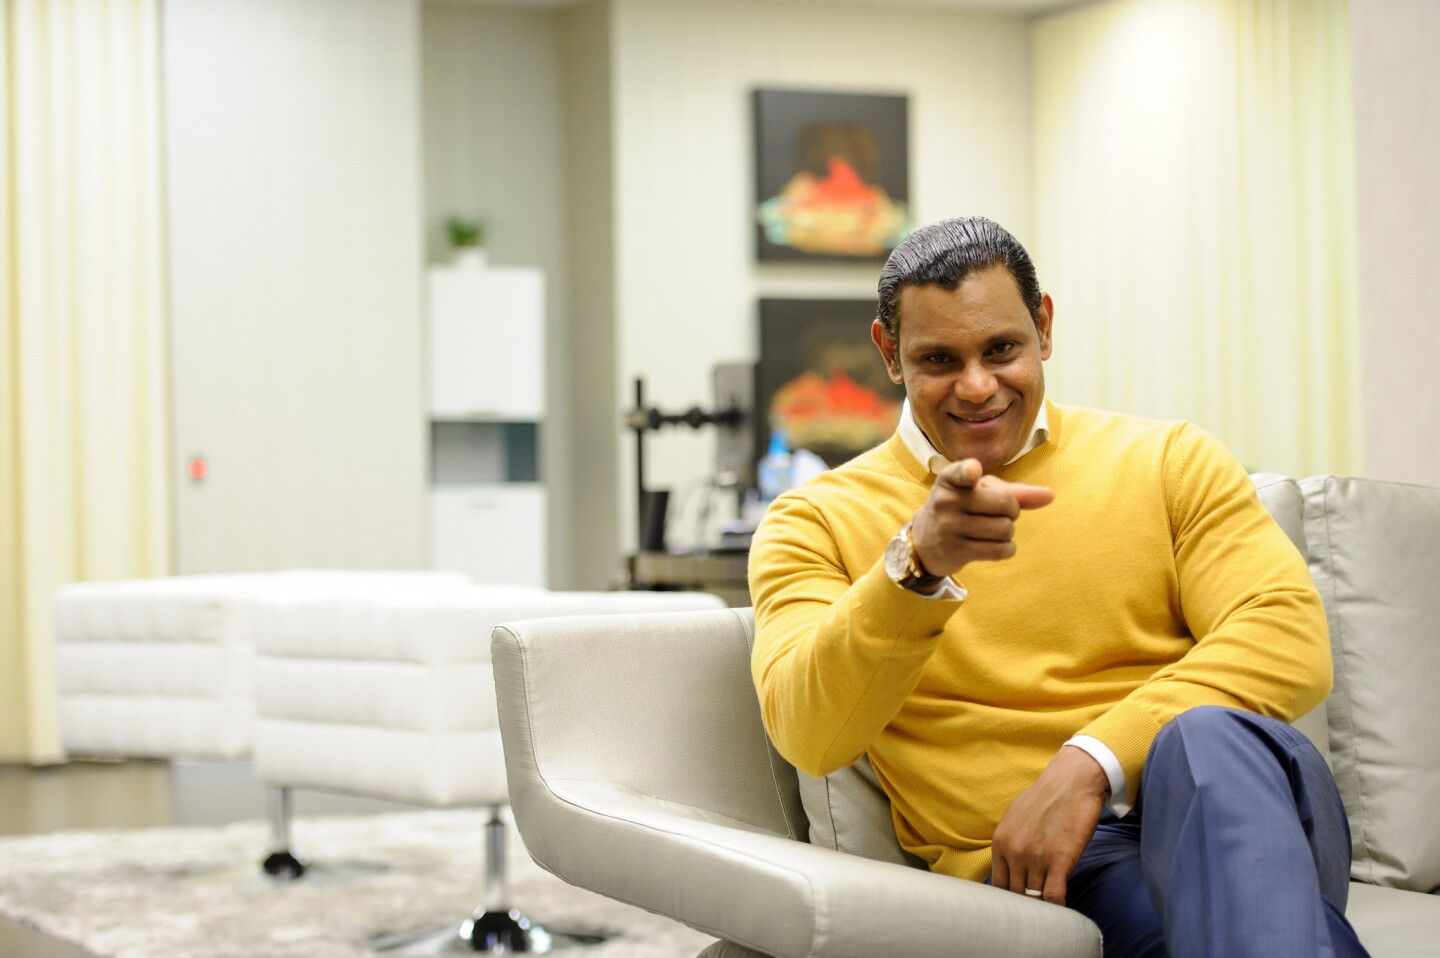 Former Cub Sammy Sosa during a photo session on December 11, 2012.